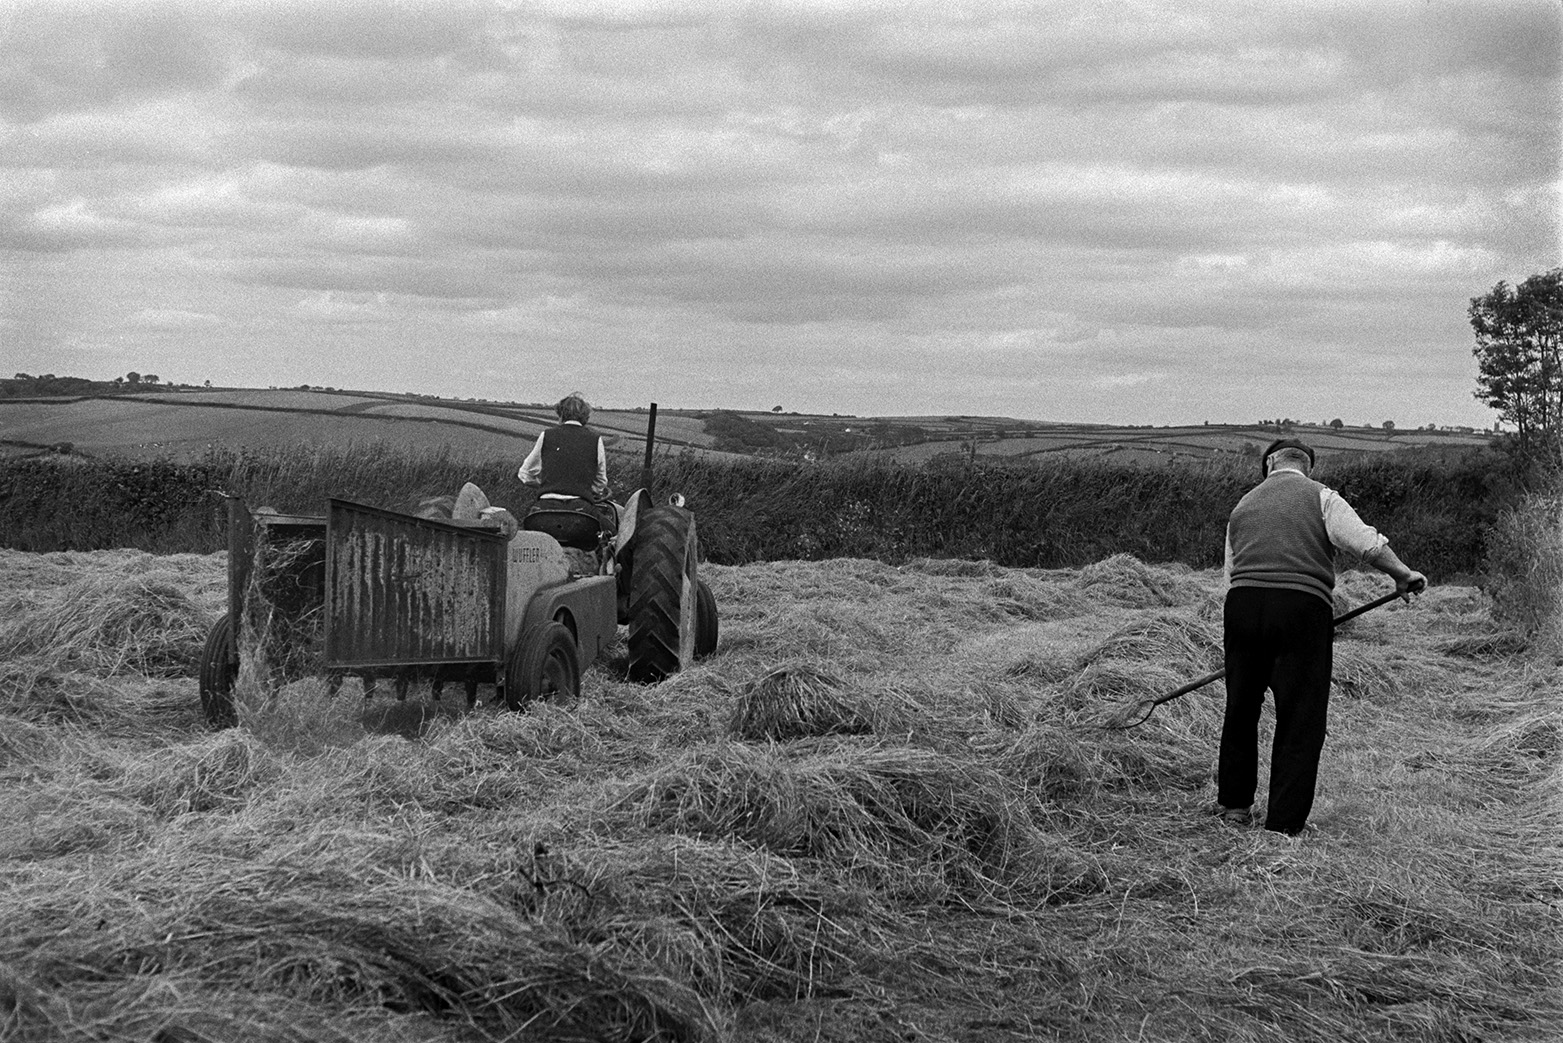 A man turning hay using a pitchfork, to prepare it for baling, in a field at Mill Road Farm, Beaford. Ivor Bourne is driving a tractor and windrow machine to create rows for baling. The farm was also known as Jeffrys.